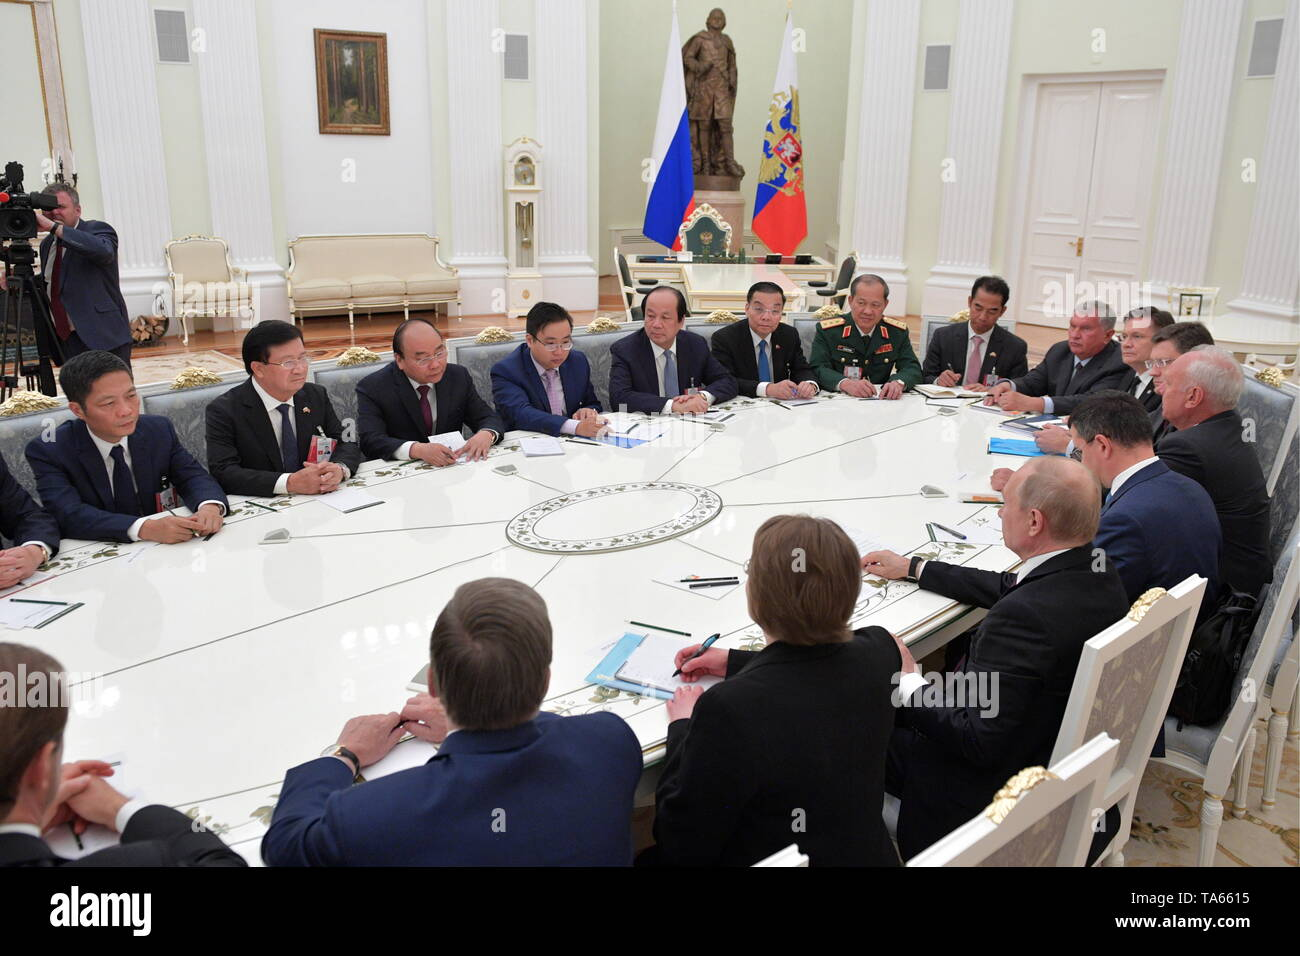 Moscow, Russia. 22nd May, 2019. MOSCOW, RUSSIA - MAY 22, 2019: Russia's President Vladimir Putin (C front) and Vietnam's Prime Minister Nguyen Xuan Phuc (3rd L back) during a meeting at the Moscow Kremlin. Alexei Druzhinin/Russian Presidential Press and Information Office/TASS Credit: ITAR-TASS News Agency/Alamy Live News - Stock Image